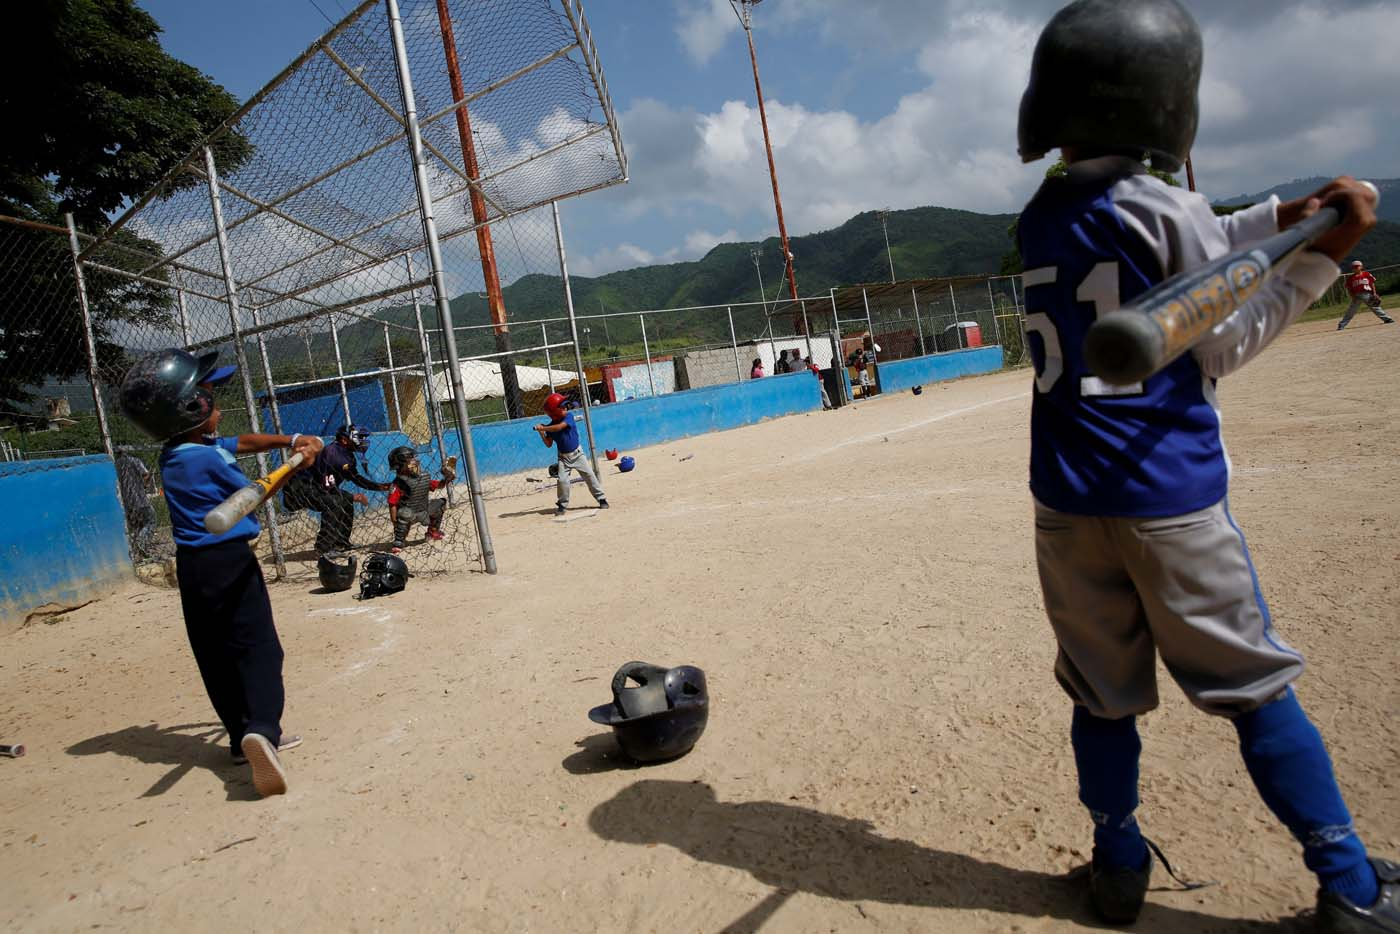 Children play during a baseball championship in Caracas, Venezuela August 24, 2017. Picture taken August 24, 2017. REUTERS/Carlos Garcia Rawlins